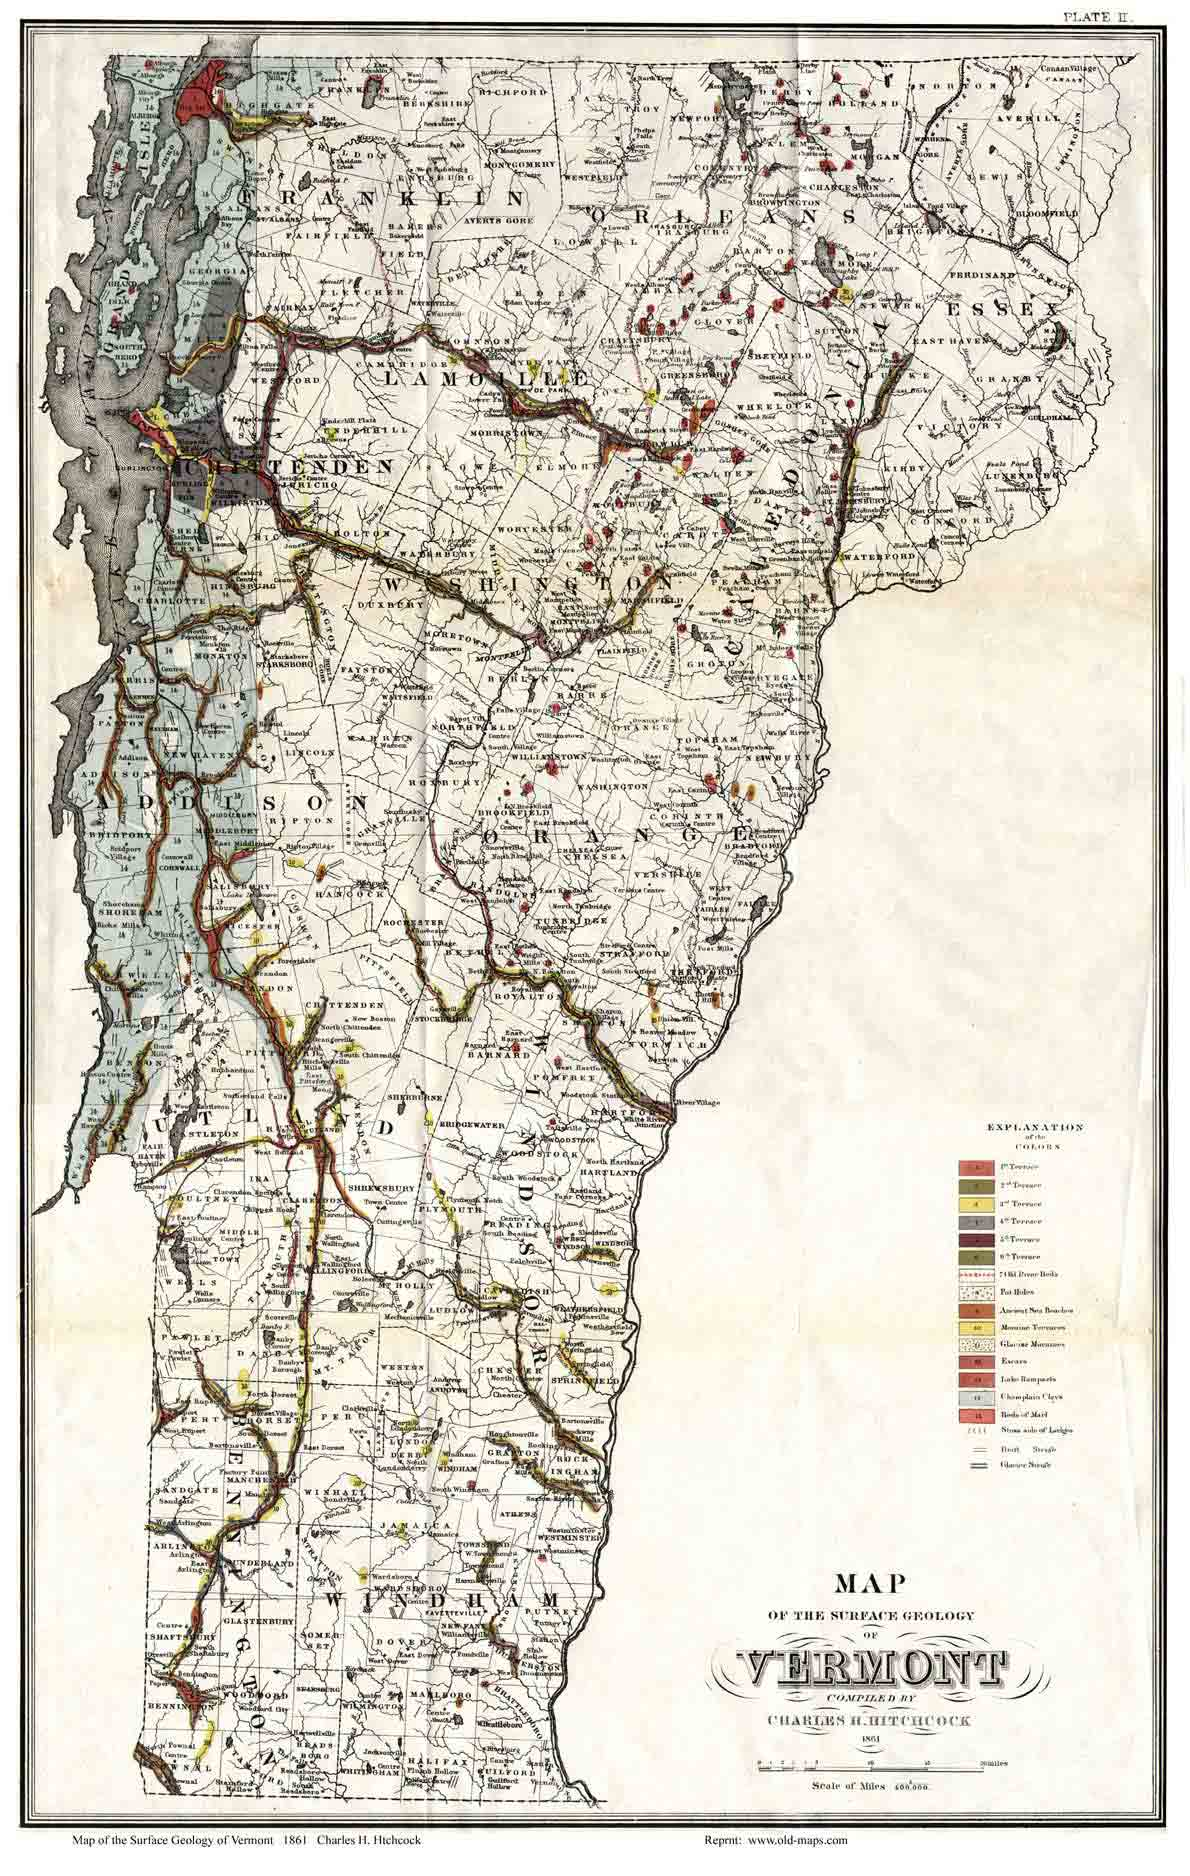 geological vt state map. whitelaw's map of vermont